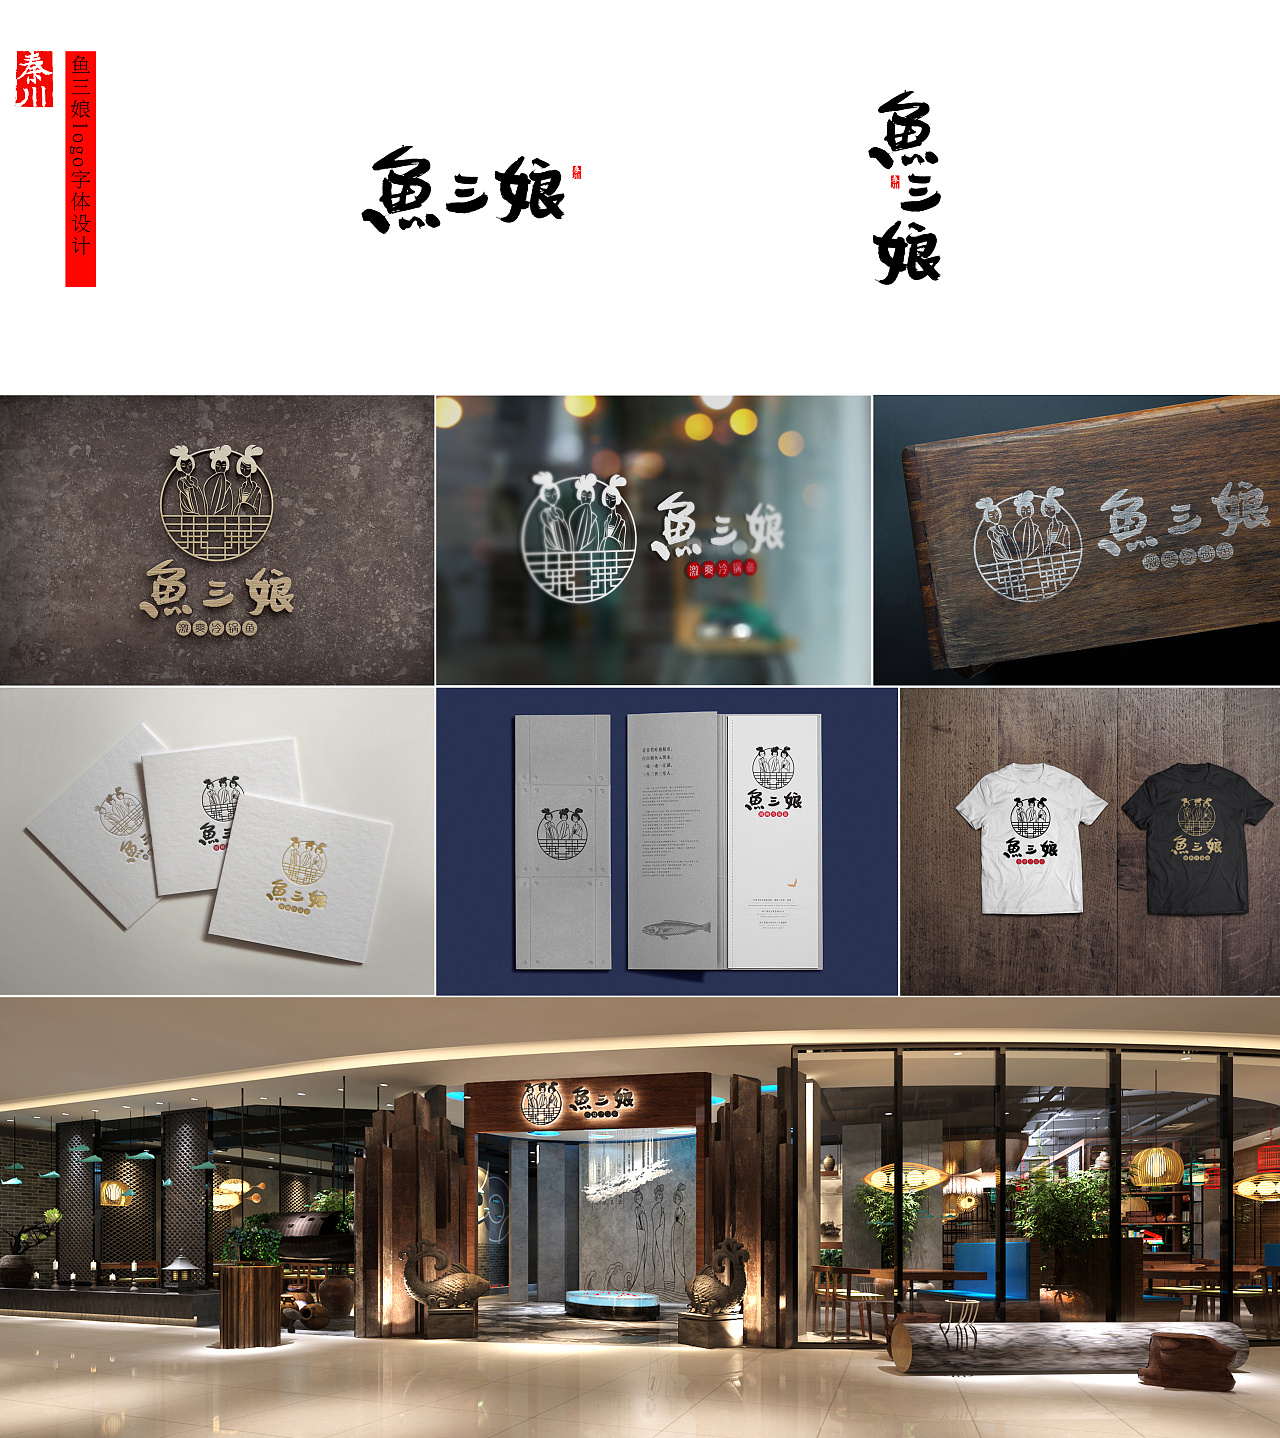 chinesefontdesign.com 2017 12 16 13 31 42 243700 15P Chinese commercial font design evolution design